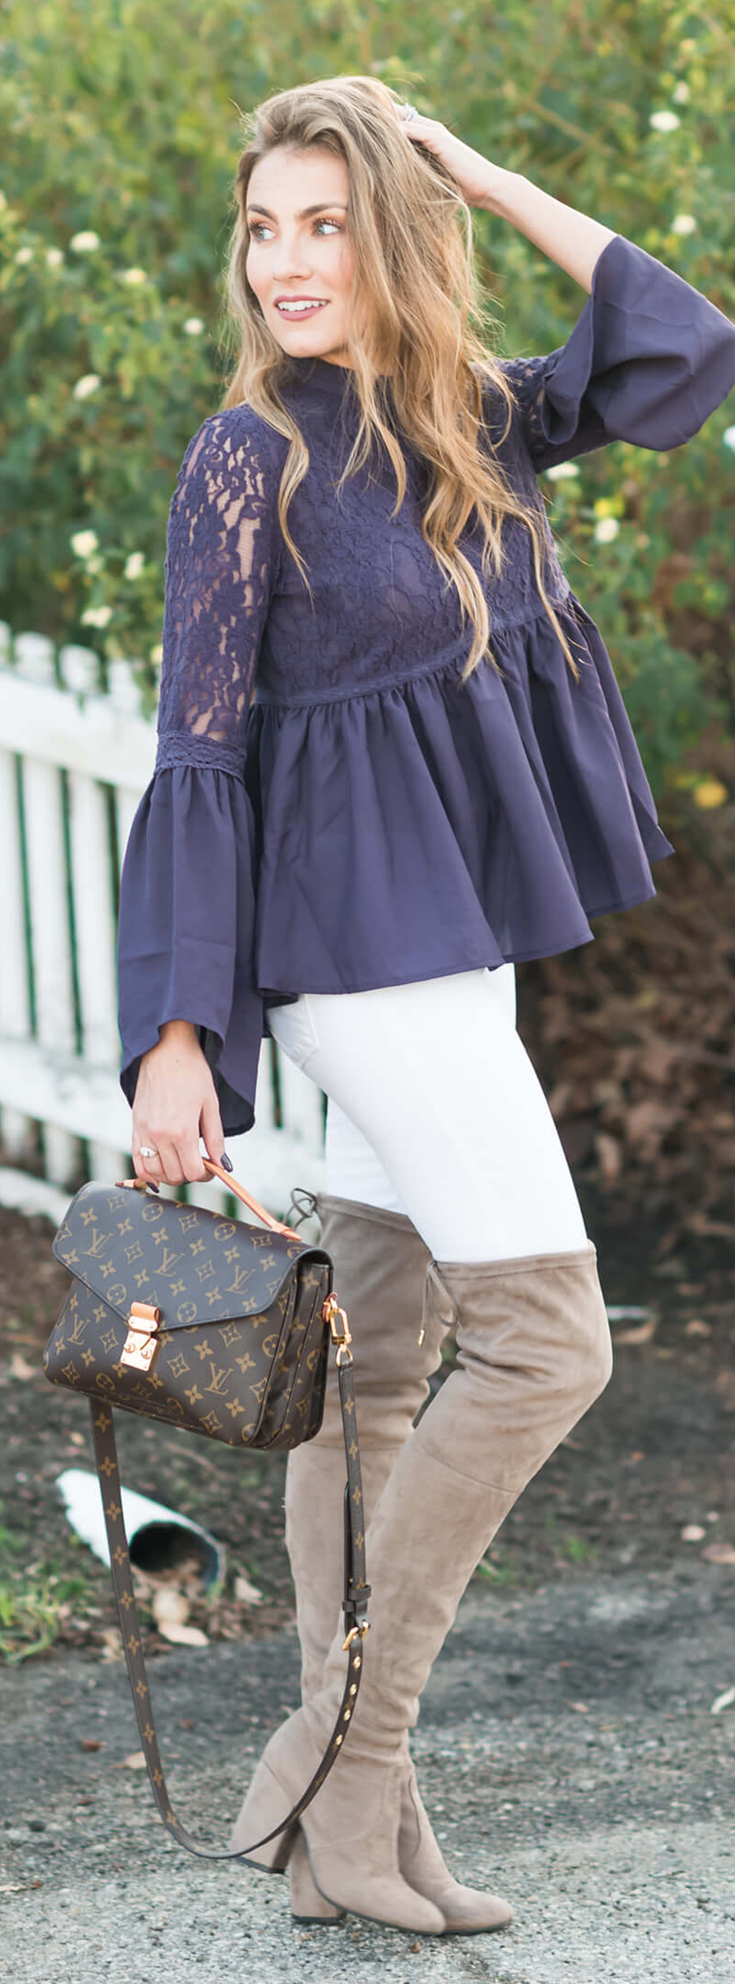 Winter Outfit I love: Blue Lace Peplum top, White Skinny Jeans, Steve Madden Over the knee boots, and Louis Vuitton Pochette Metis. Angela Lanter - Hello Gorgeous.